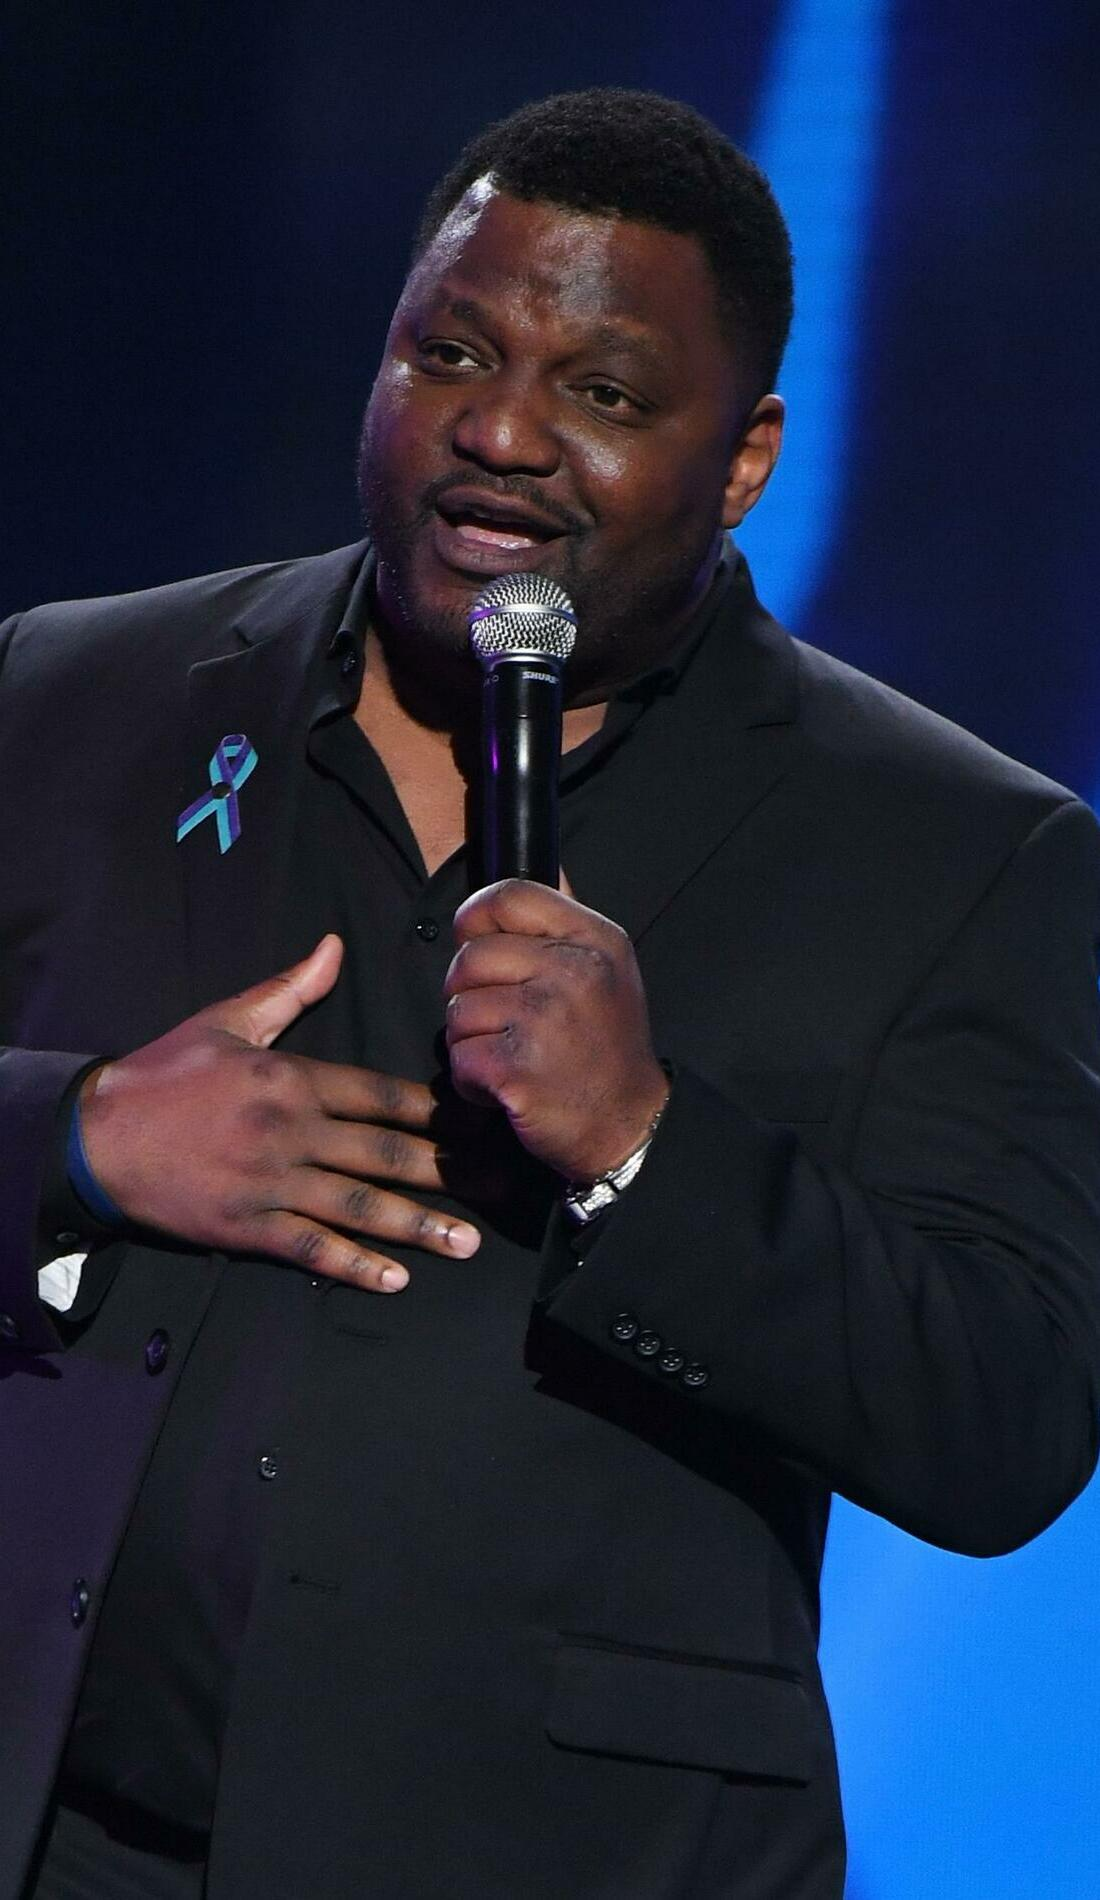 A Aries Spears live event